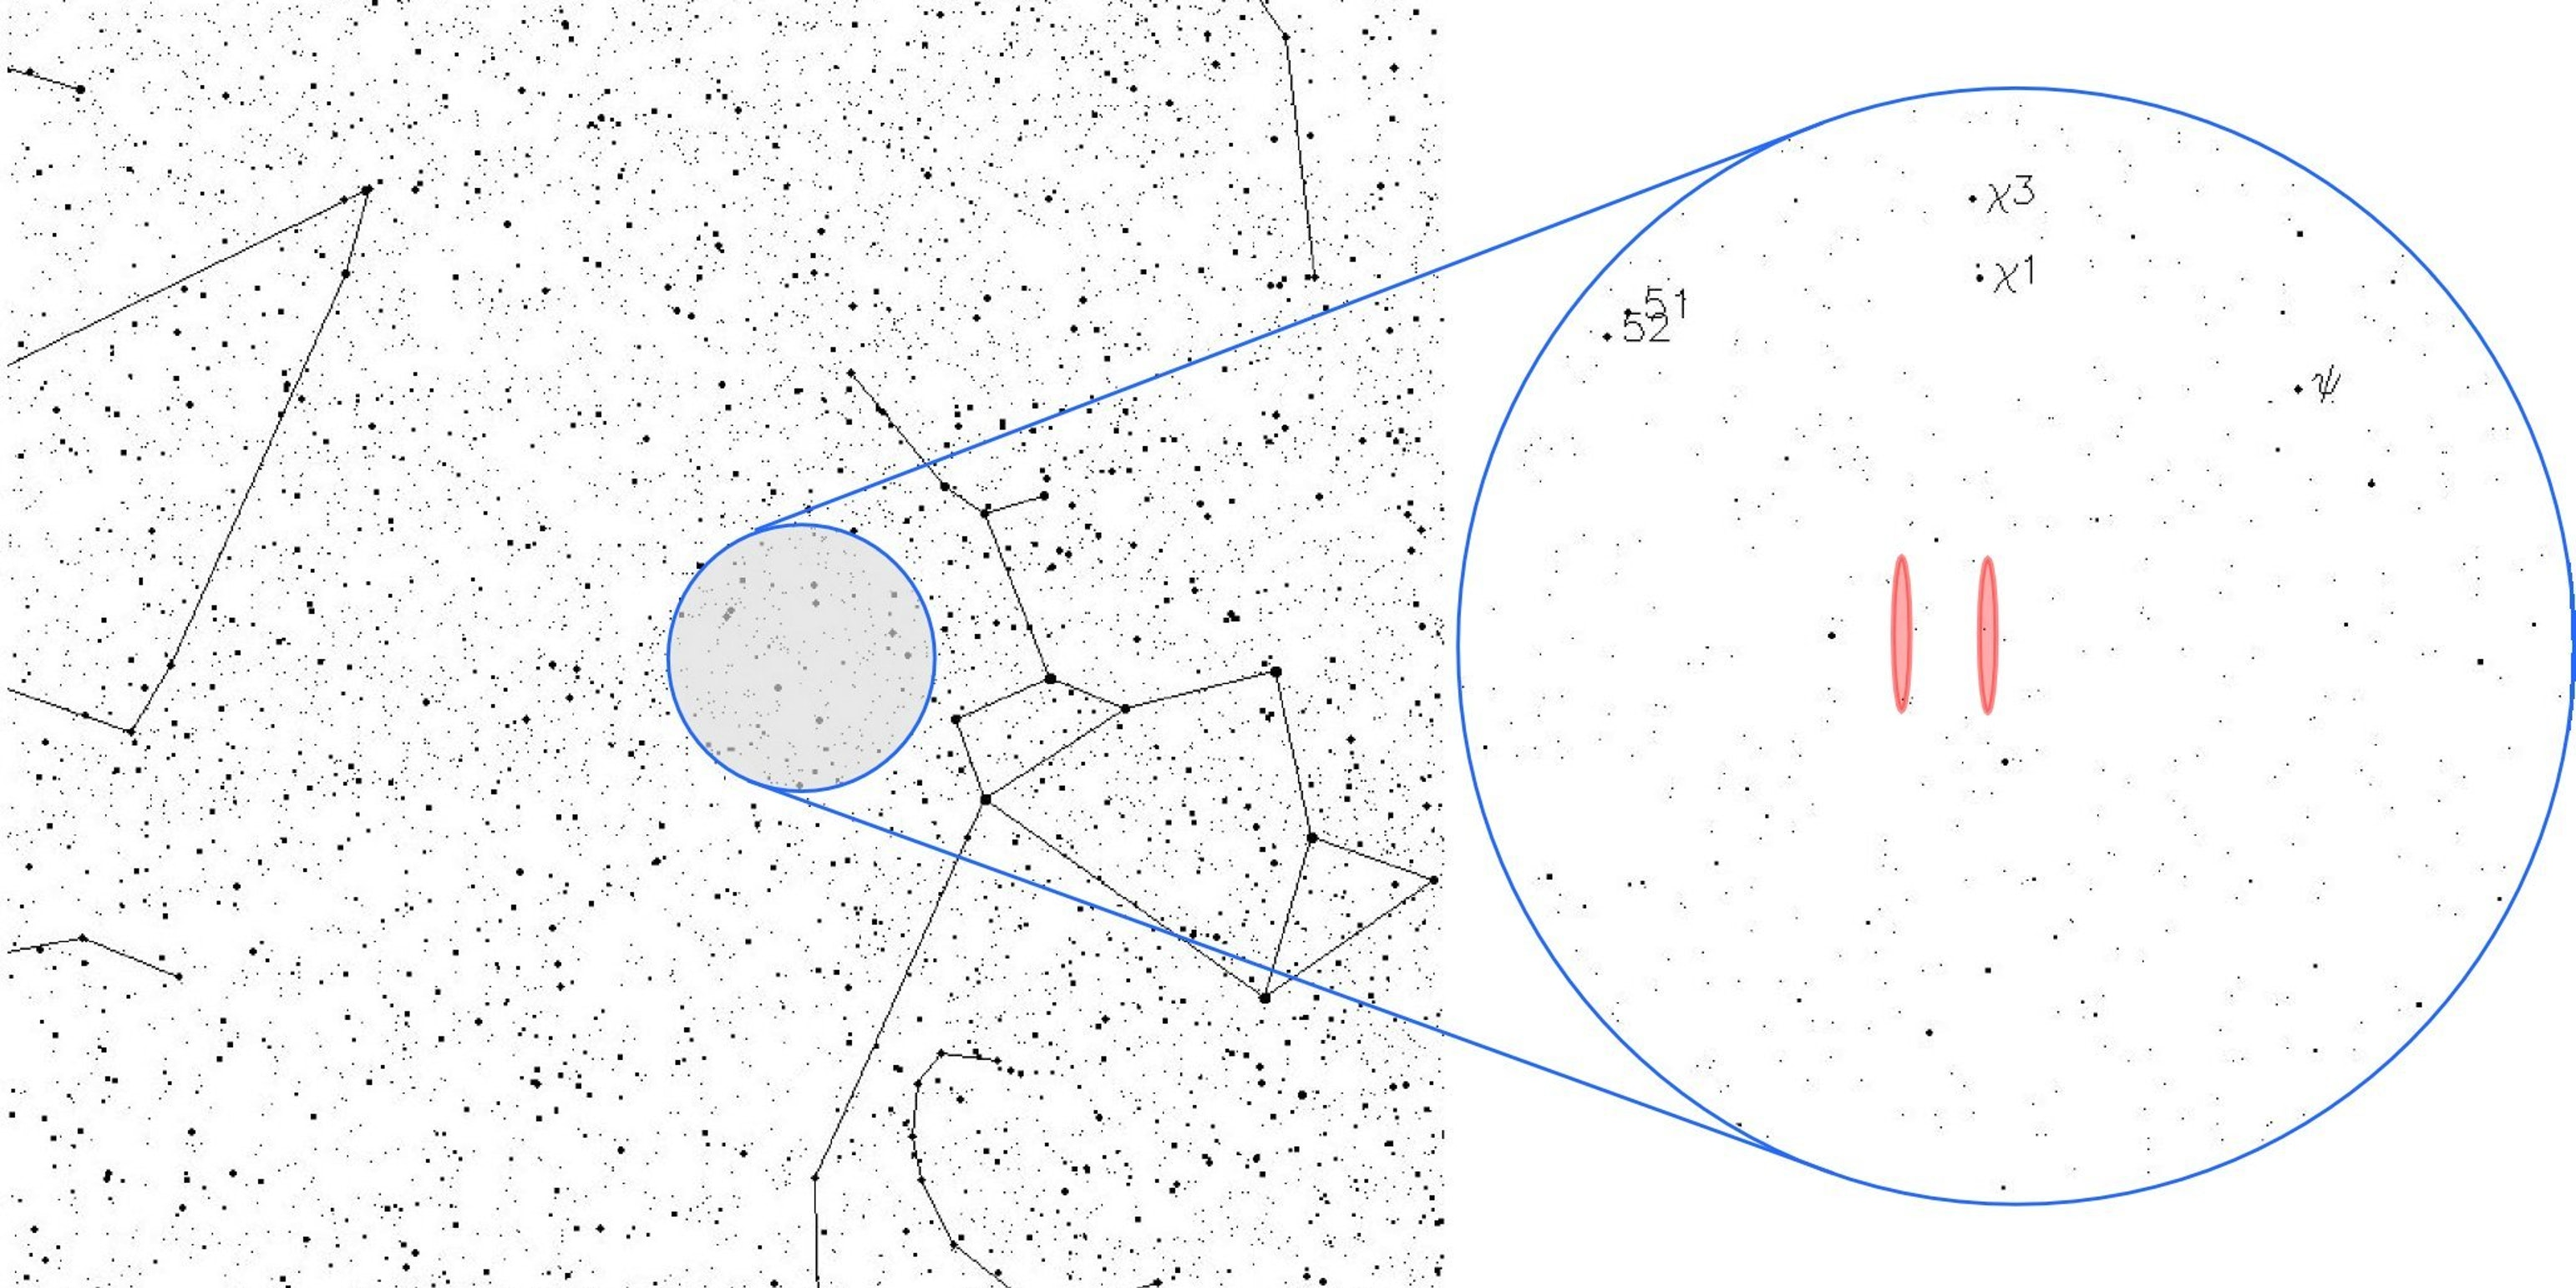 The location of the signal in the constellation Sagittarius, near the Chi Sagittarii star group.